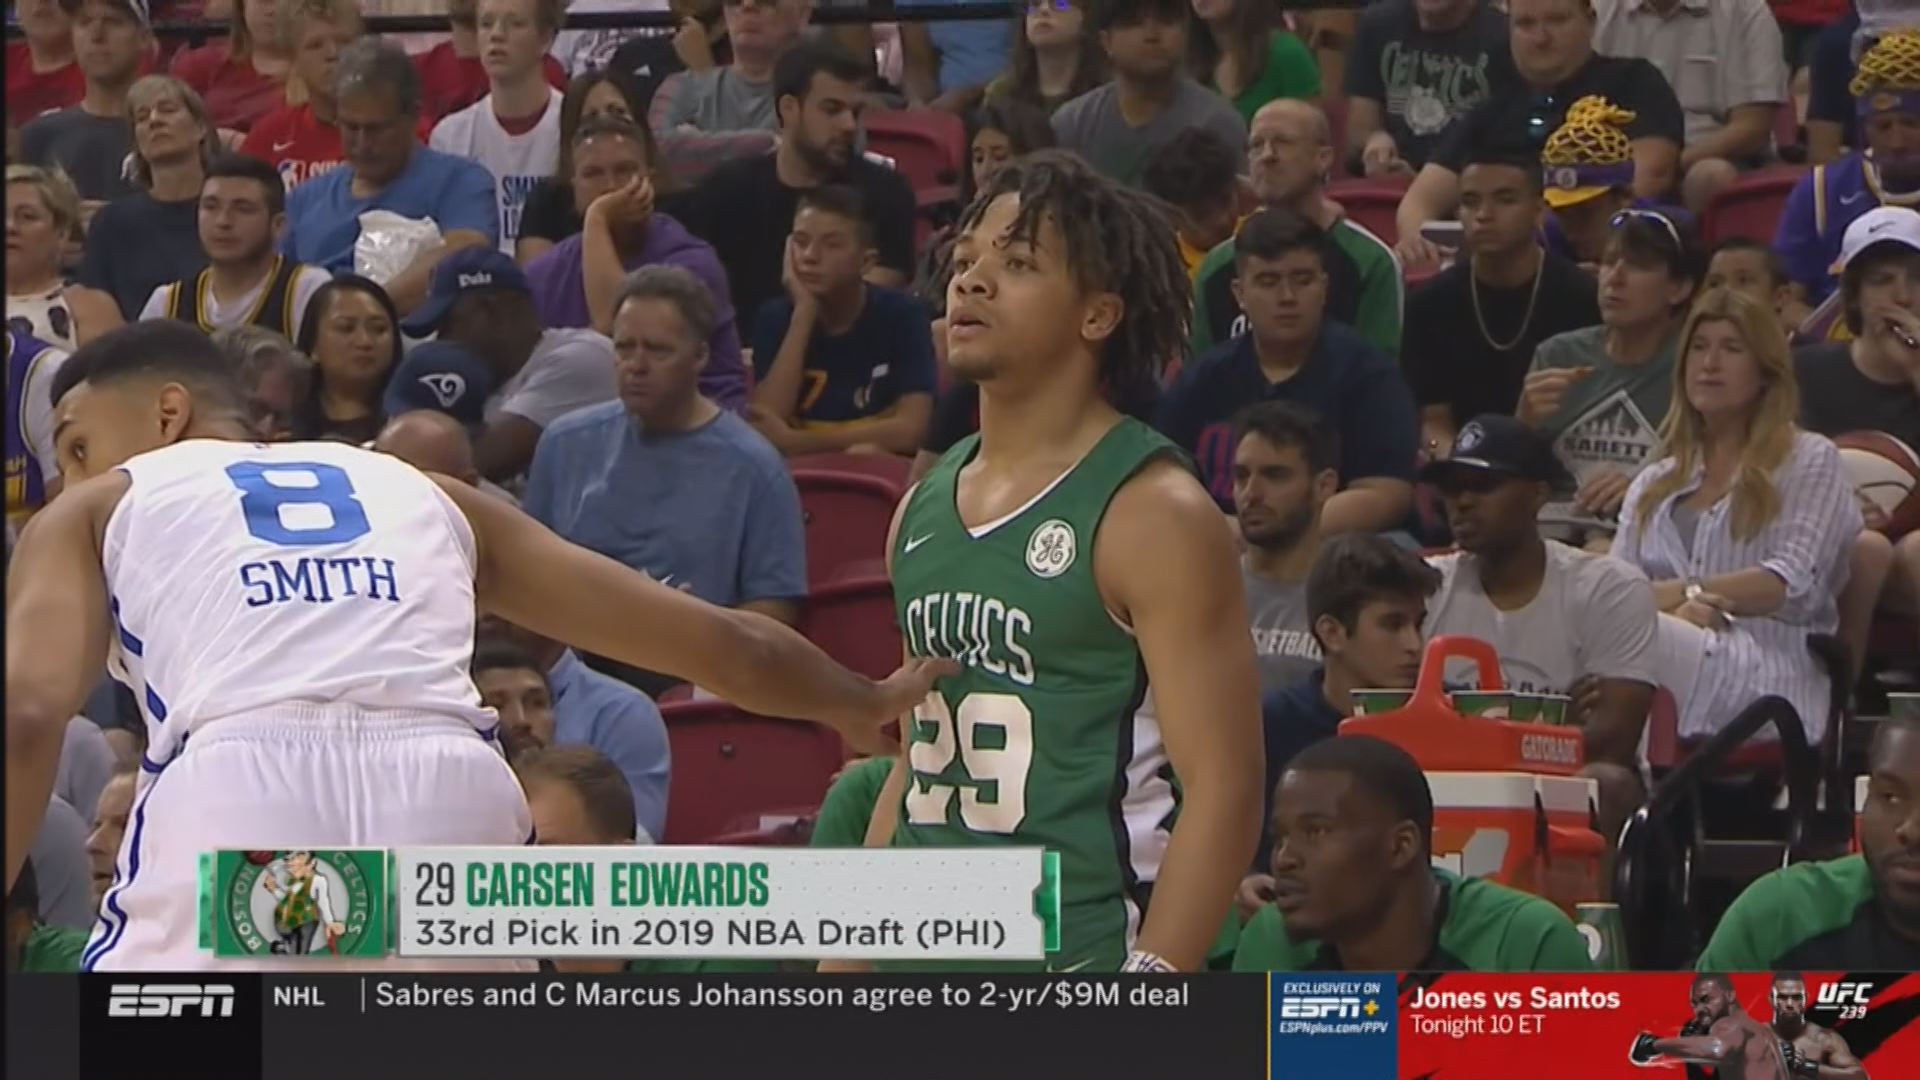 Edwards Scores 20 Points For Celtics In Nba Summer League Debut Wane